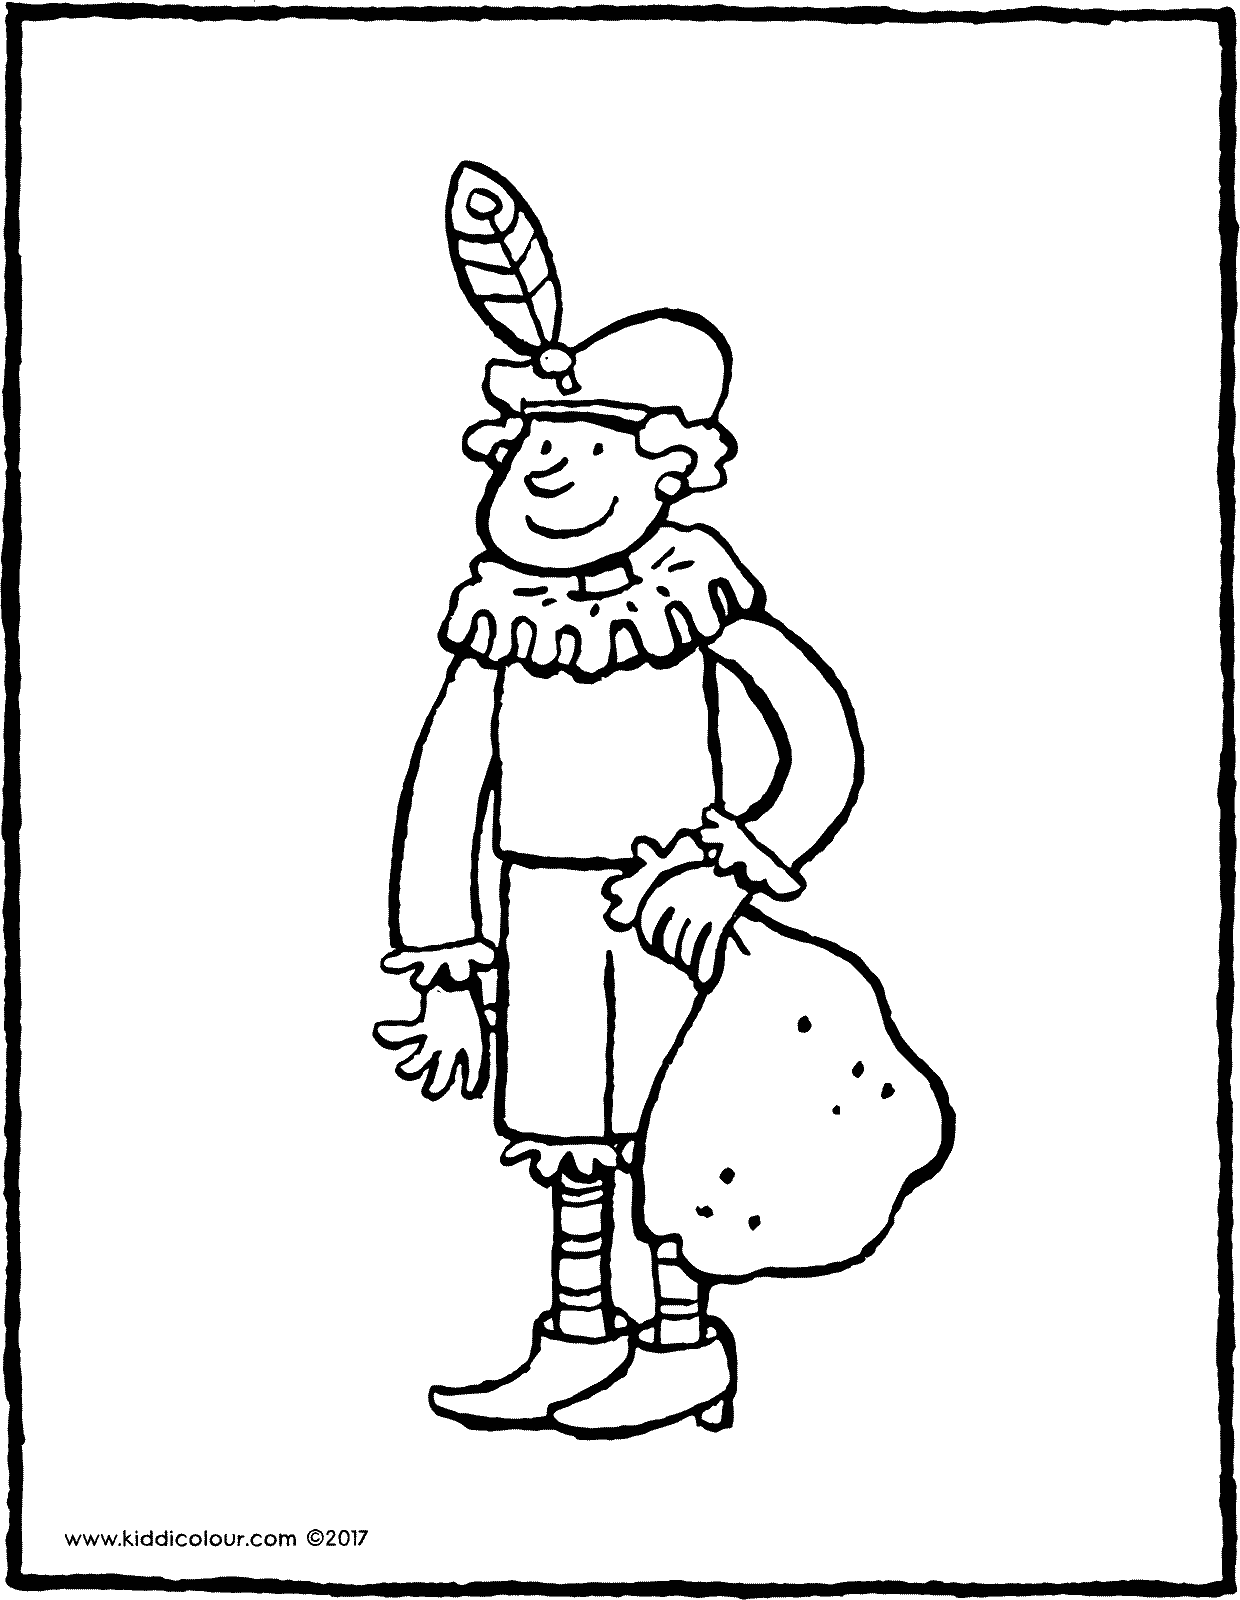 Black Pete colouring page page drawing picture 05V